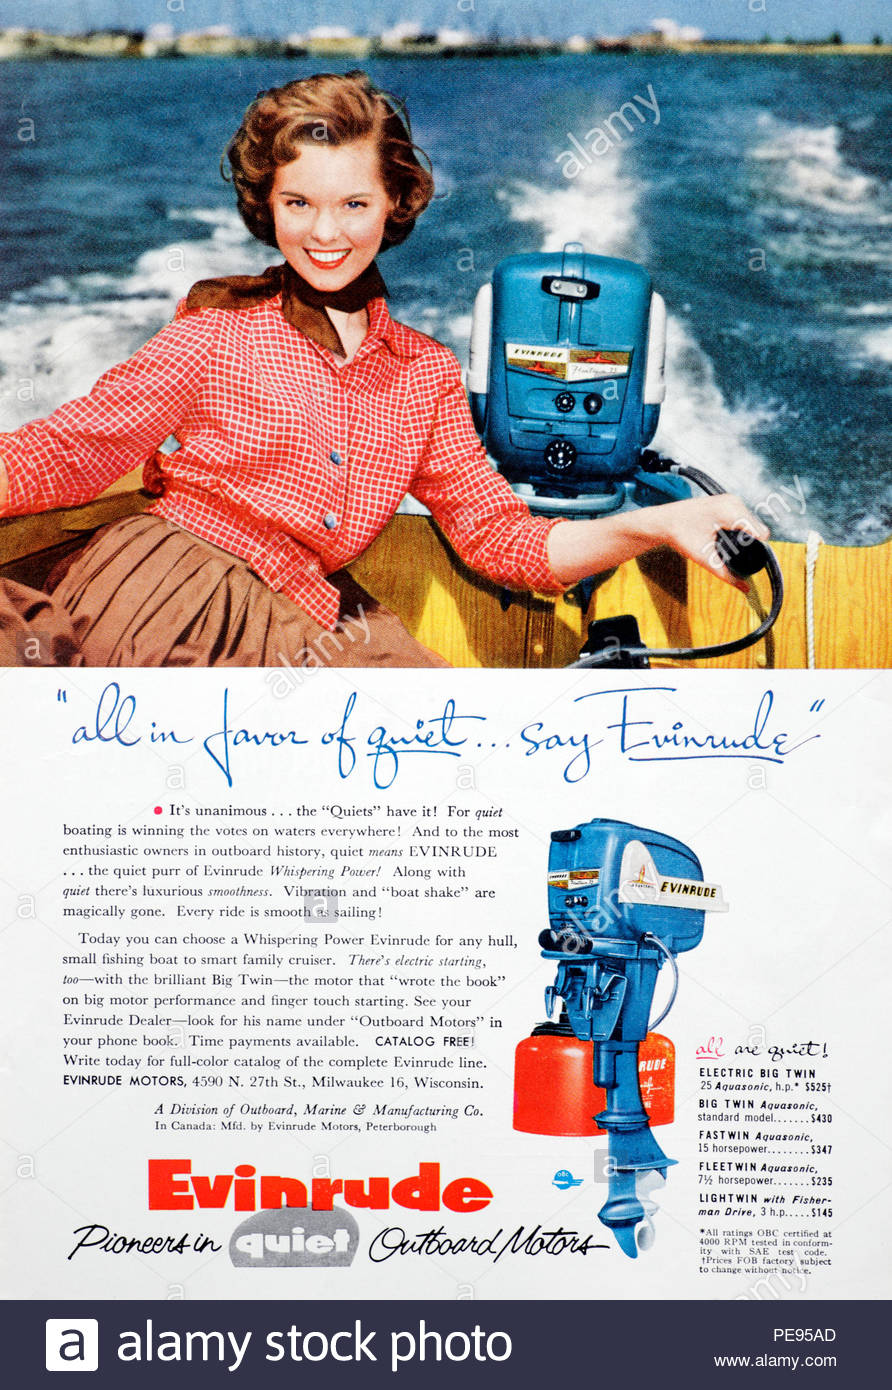 Vintage advertising for Evinrude Outboard Motors from 1950s - Stock Image